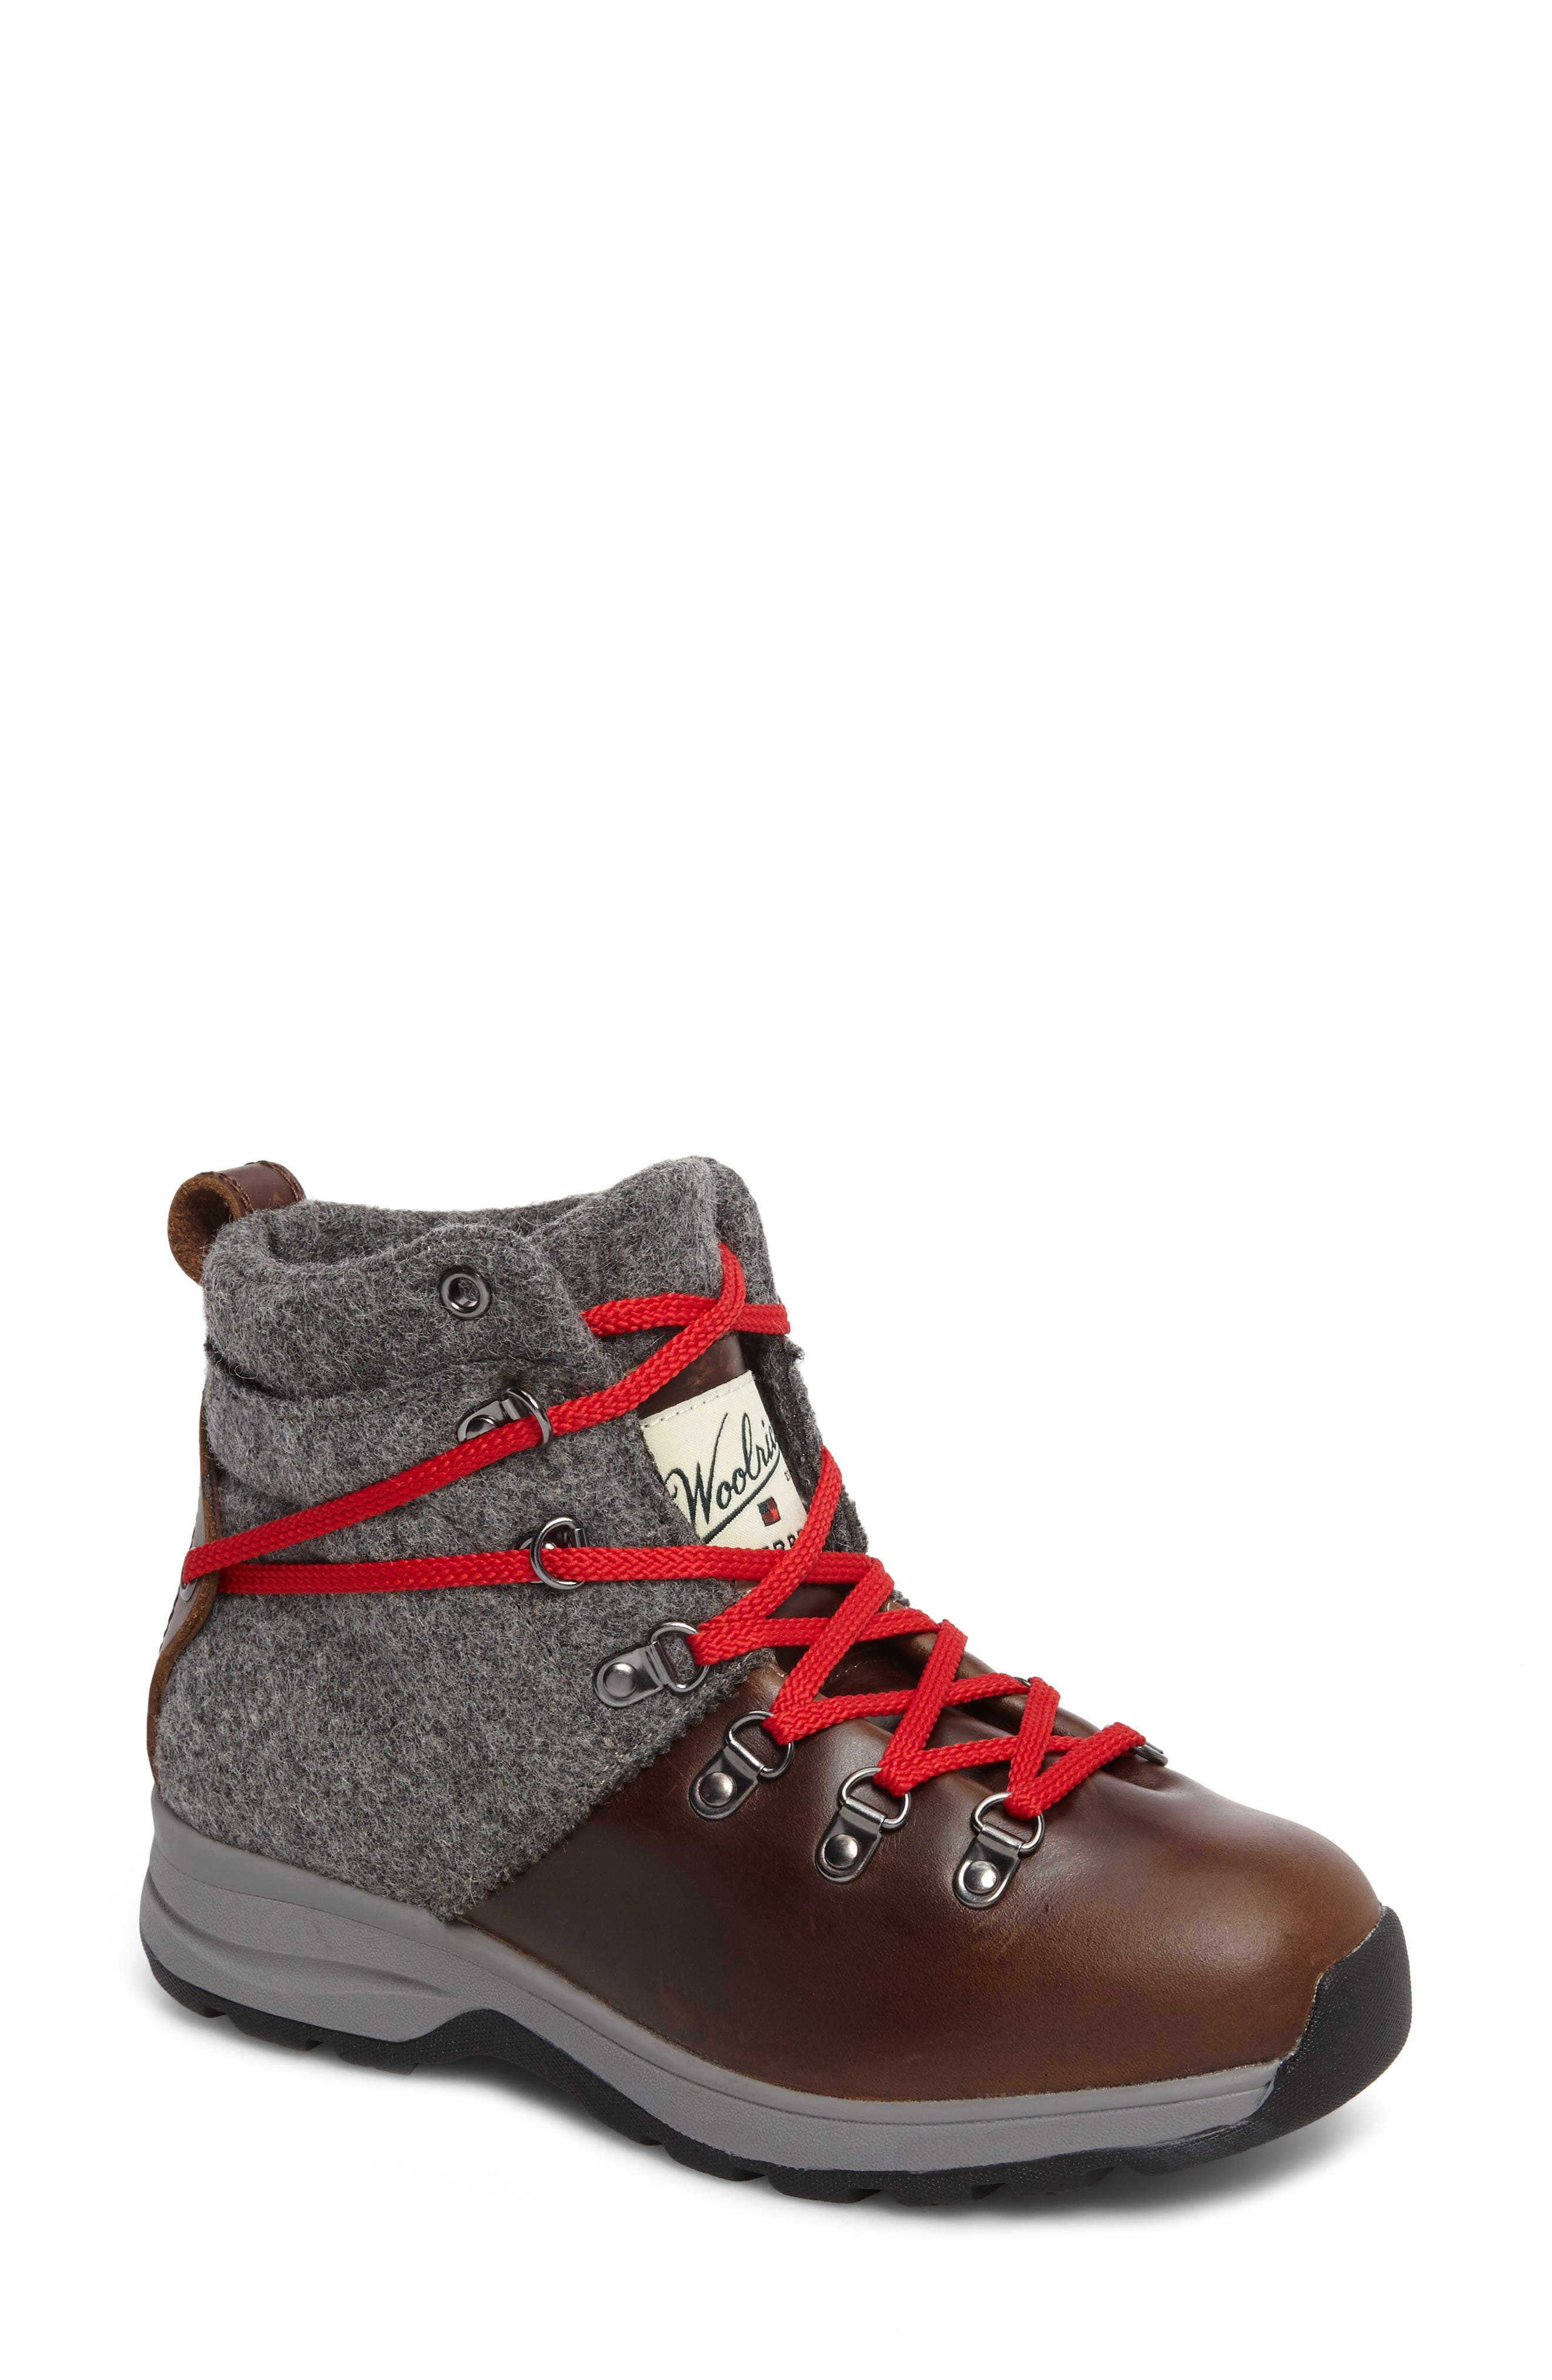 Main Image - Woolrich Rockies II Waterproof Hiking Boot (Women)